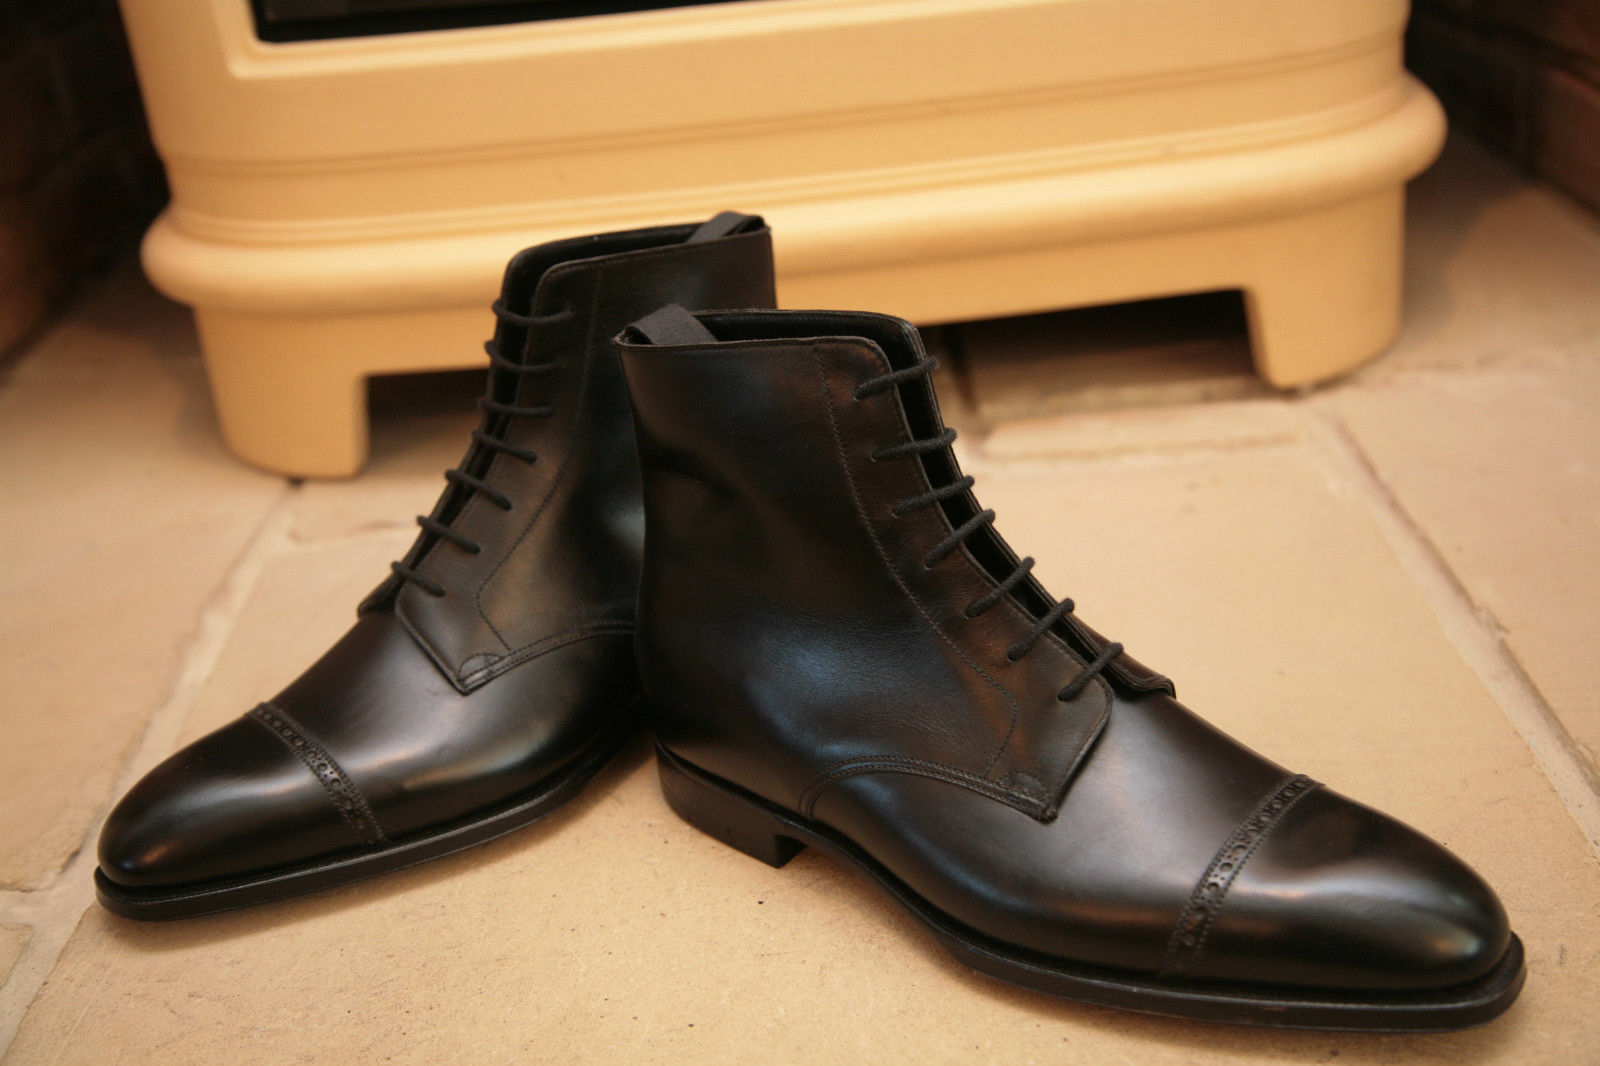 Handmade Mens Oxford Dress Boot Men Black Lace Up Ankle Leather